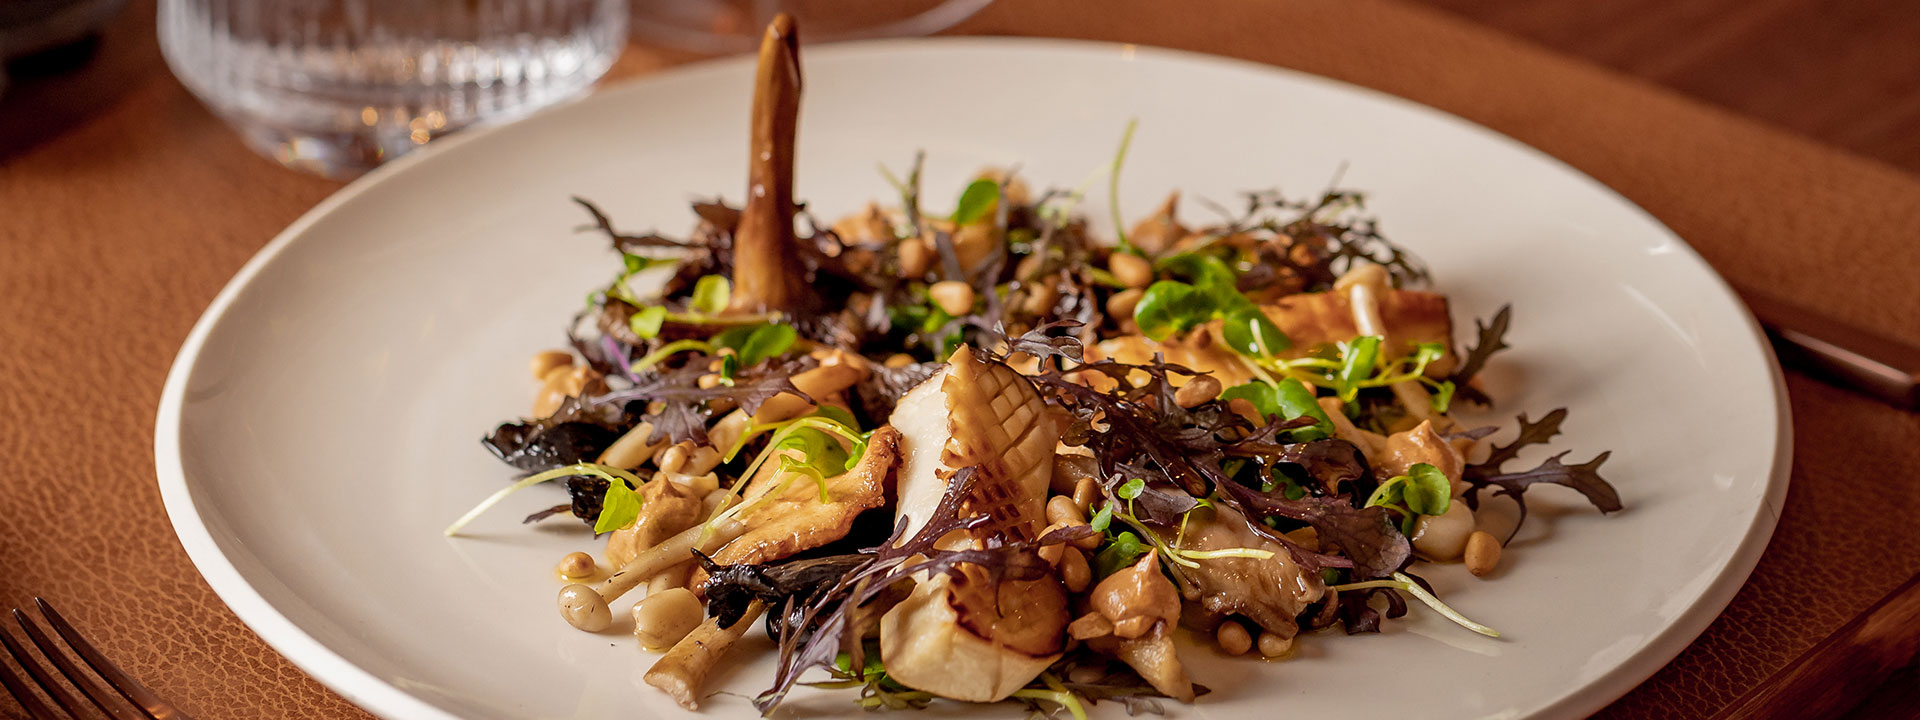 Wild mushroom salad at The Connaught Grill restaurant at The Connaught in Mayfair